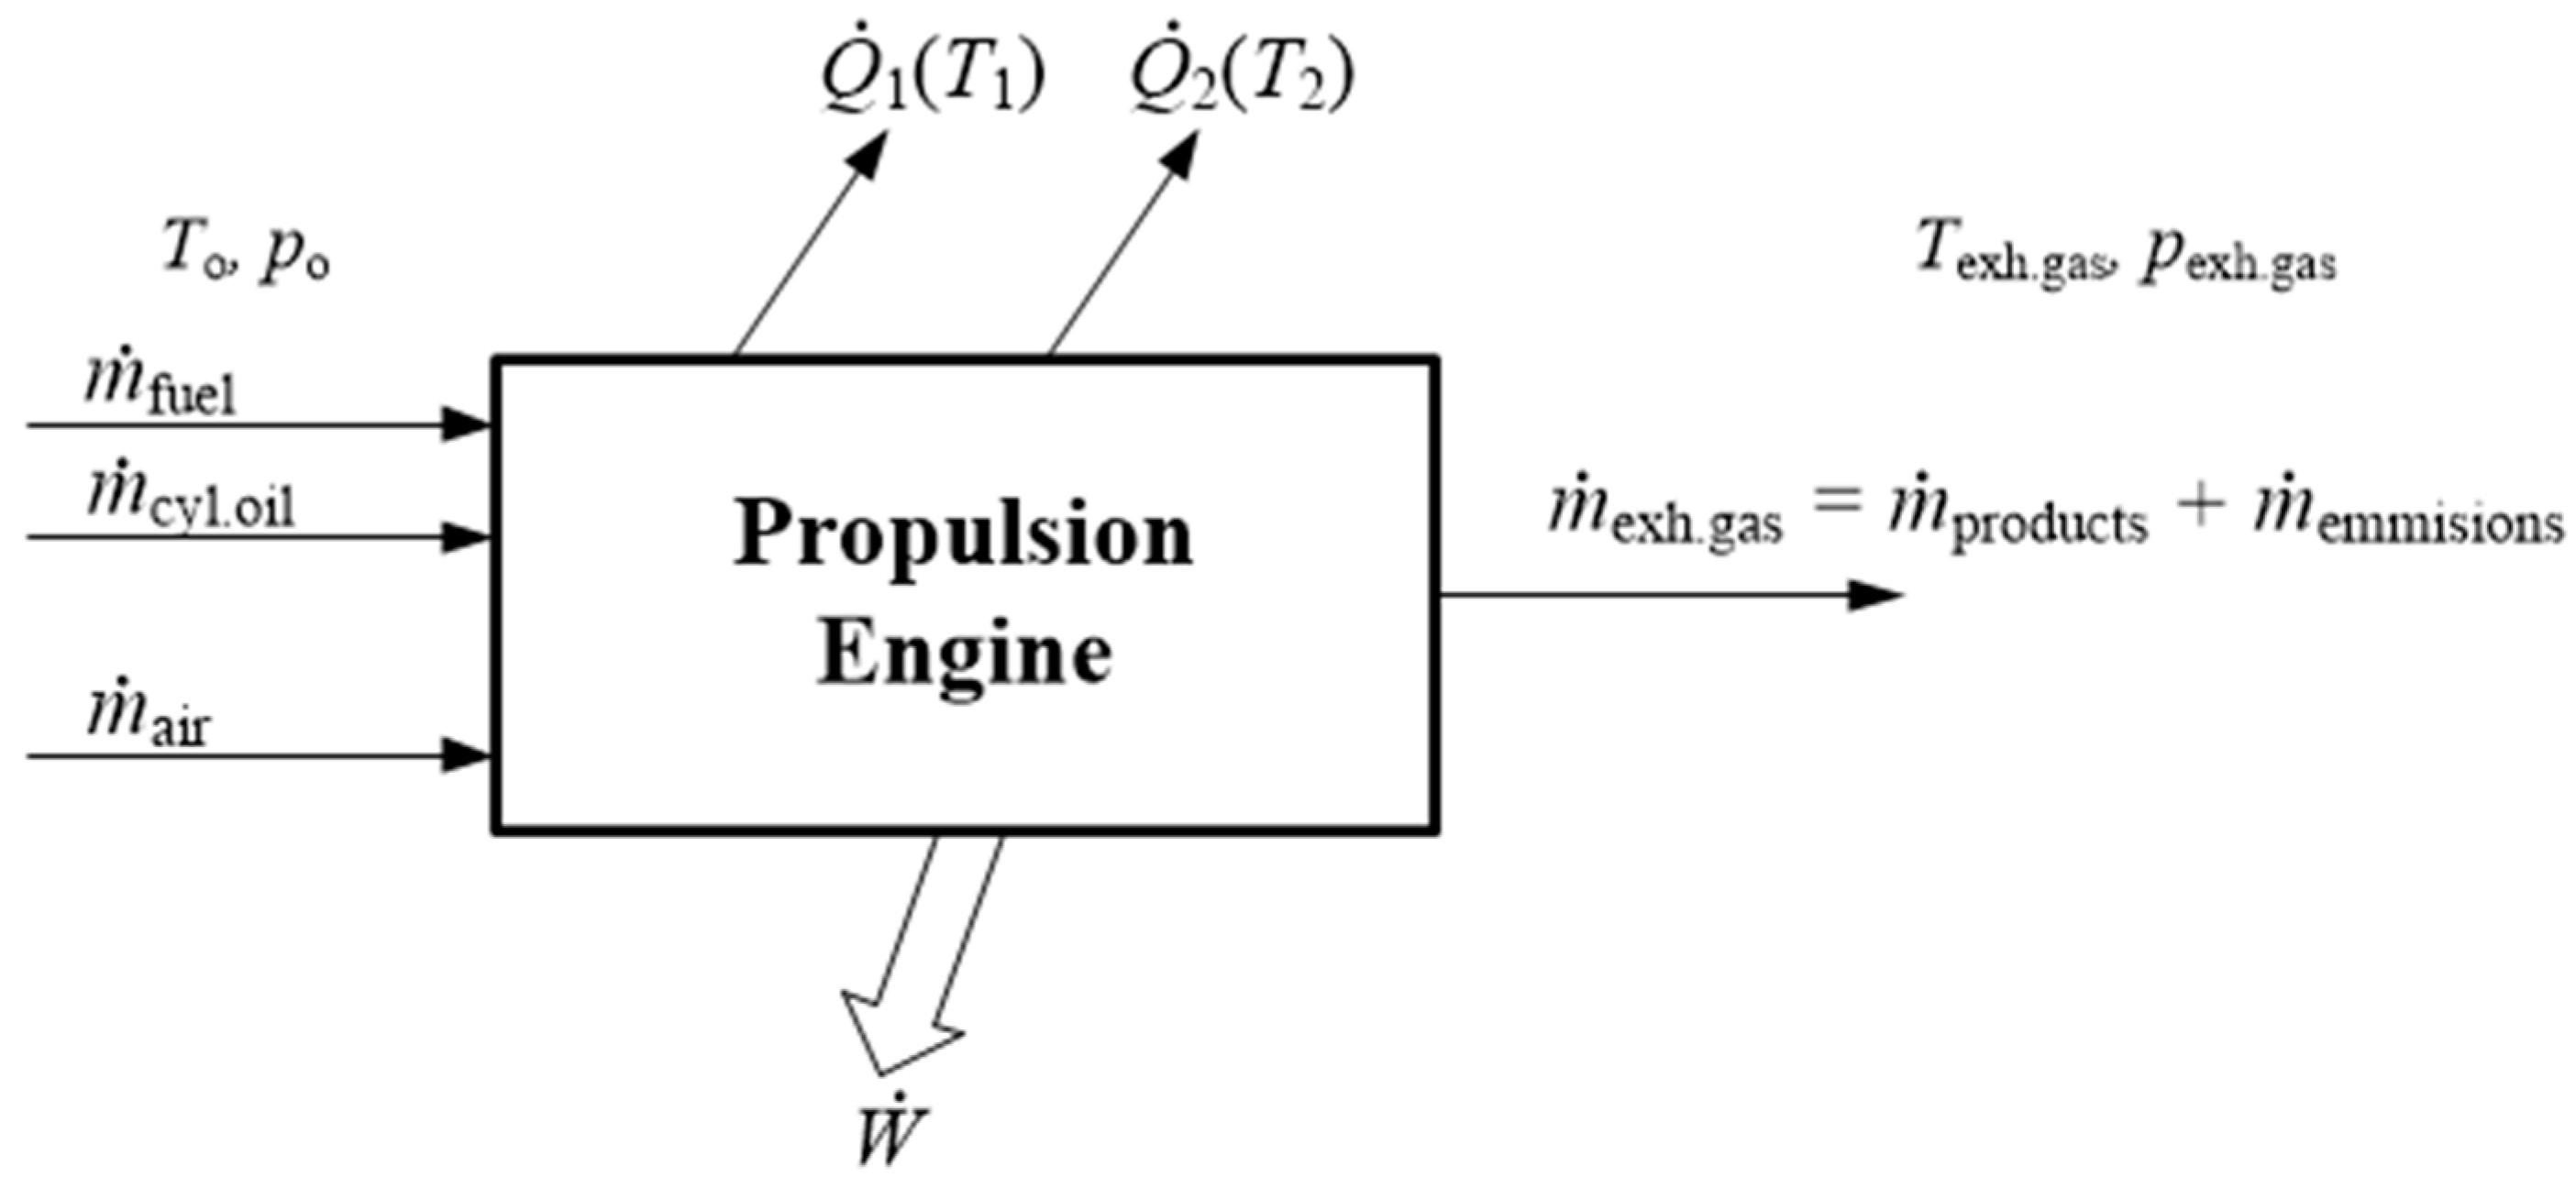 Valve Timing Diagram Of Ci Engine Energies Free Full Text Of Valve Timing Diagram Of Ci Engine